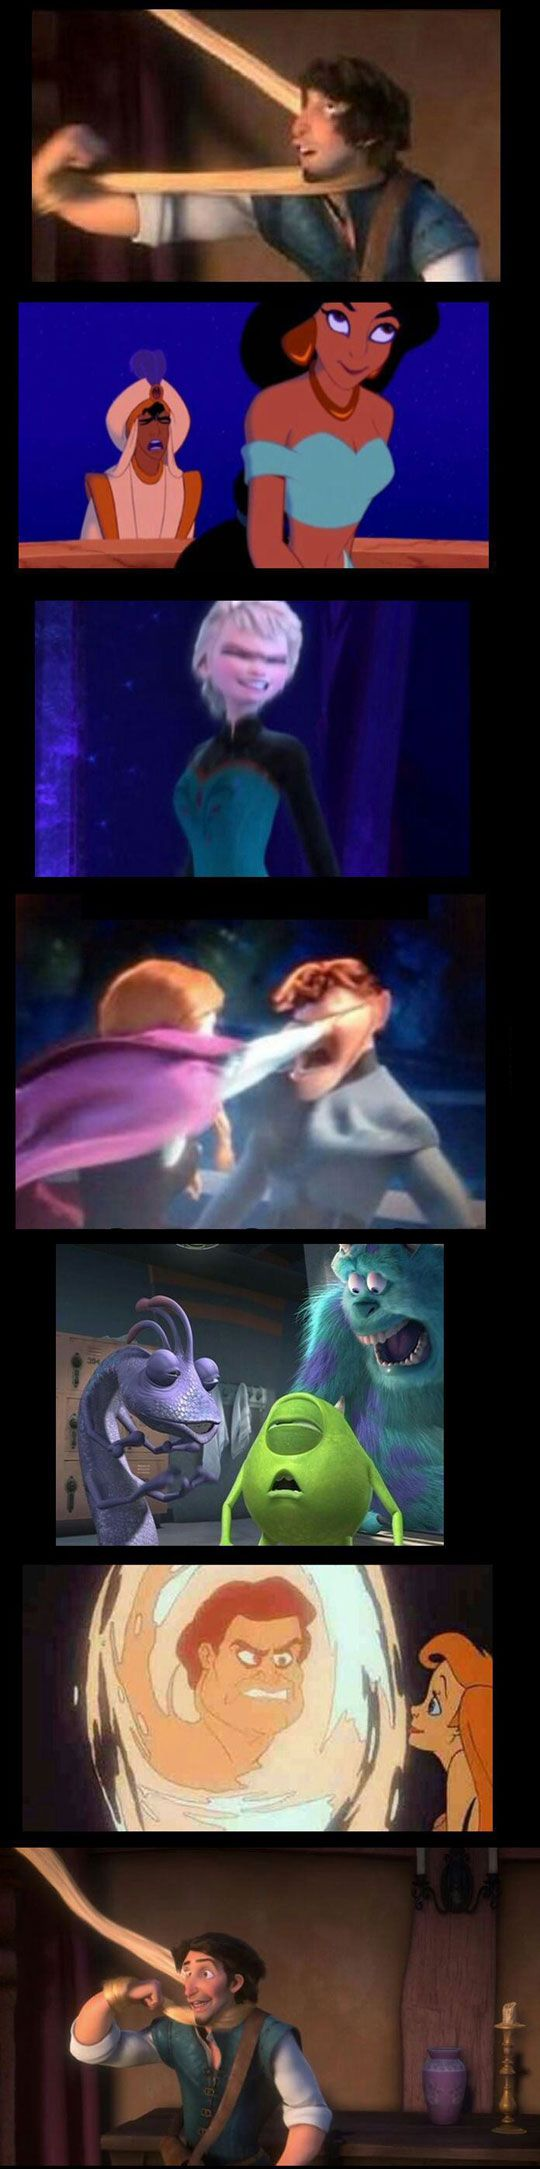 Never Pause A Disney Movie>>>I think you mean never not pause a Disney movie..